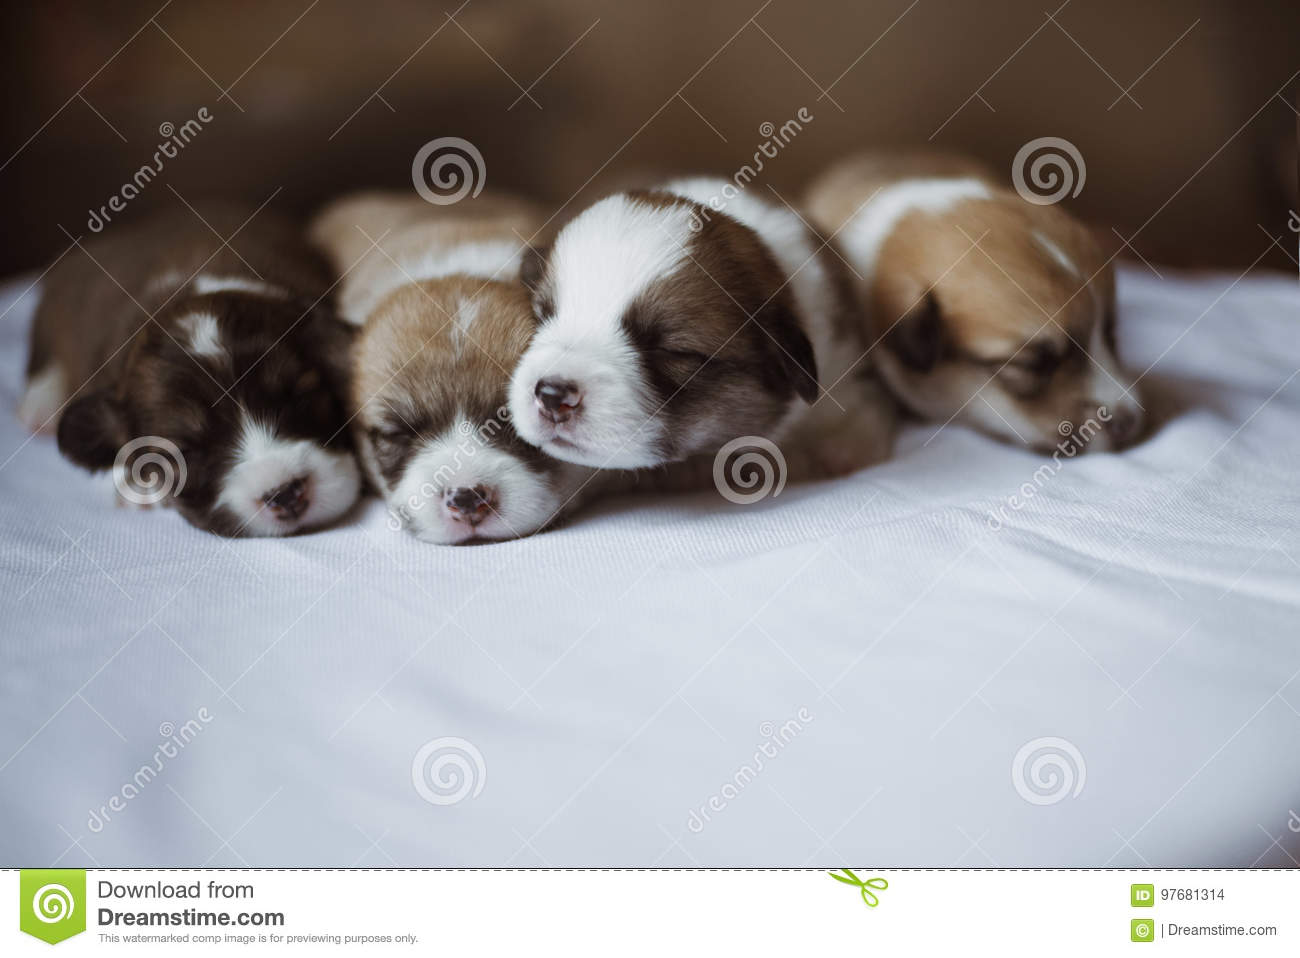 Cachorrinhos do Corgi/sessão do Corgi/estúdio com cachorrinhos do Corgi